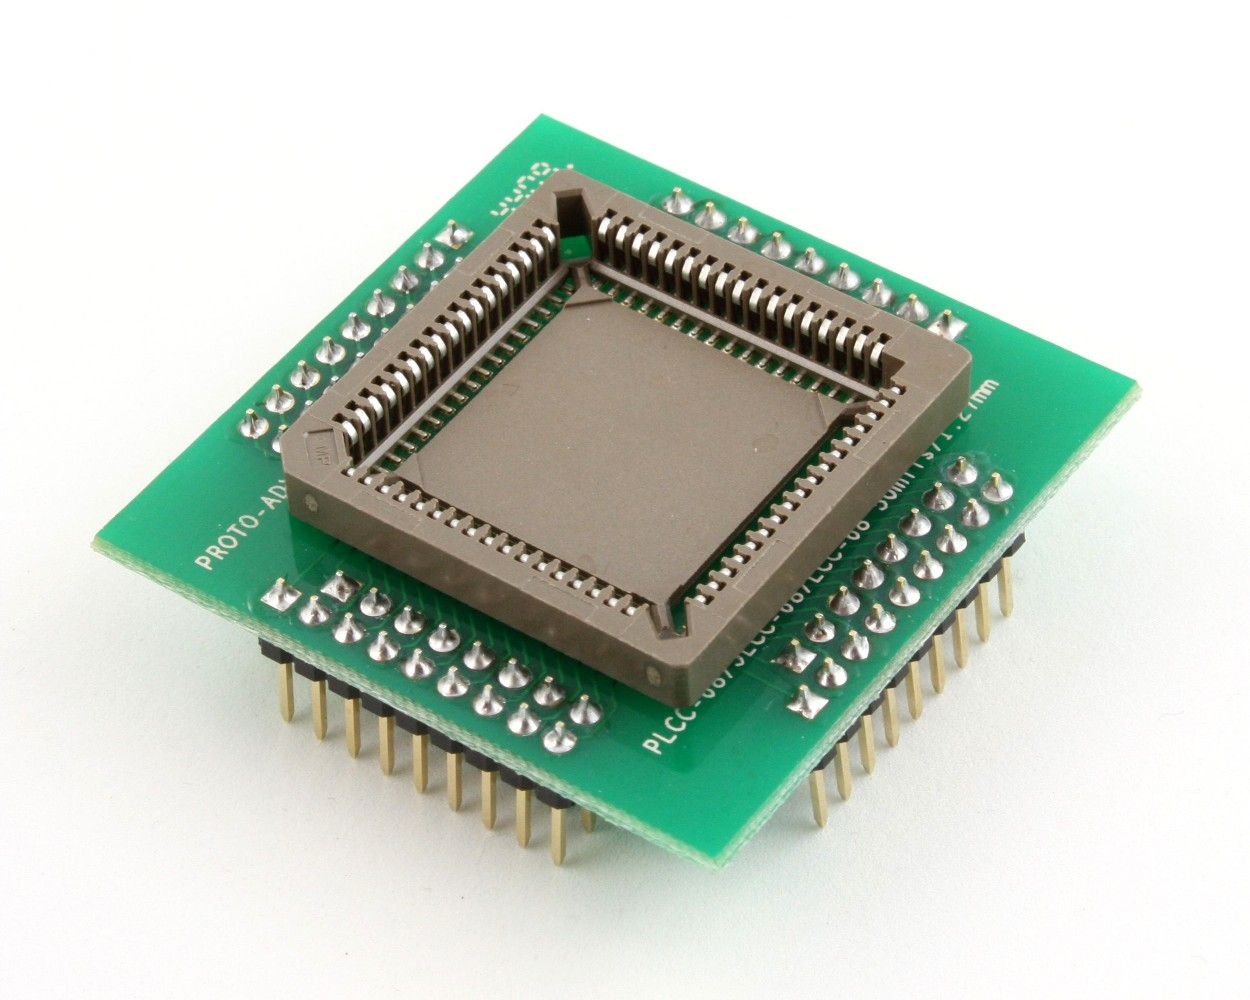 PLCC-68 Socket to PGA-68 Adapter (1.27 mm pitch, 25 x 25 mm body 0